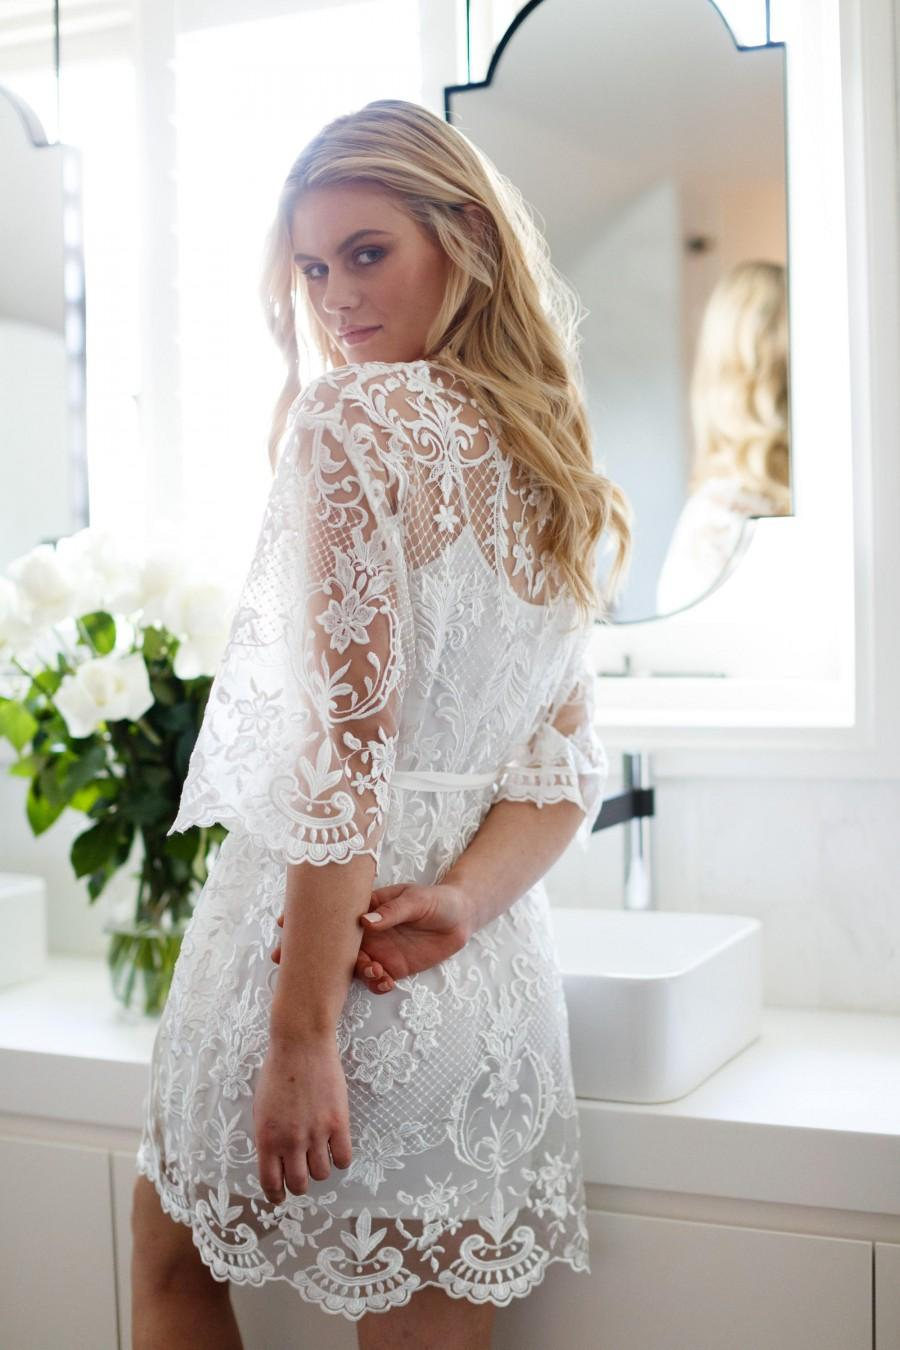 Lace Bridal Robe Bridesmaid Robes Robe Bridal Robe Bride Robe Bridal Party Robes Bridesmaid Gifts Celeste 2857054 Weddbook